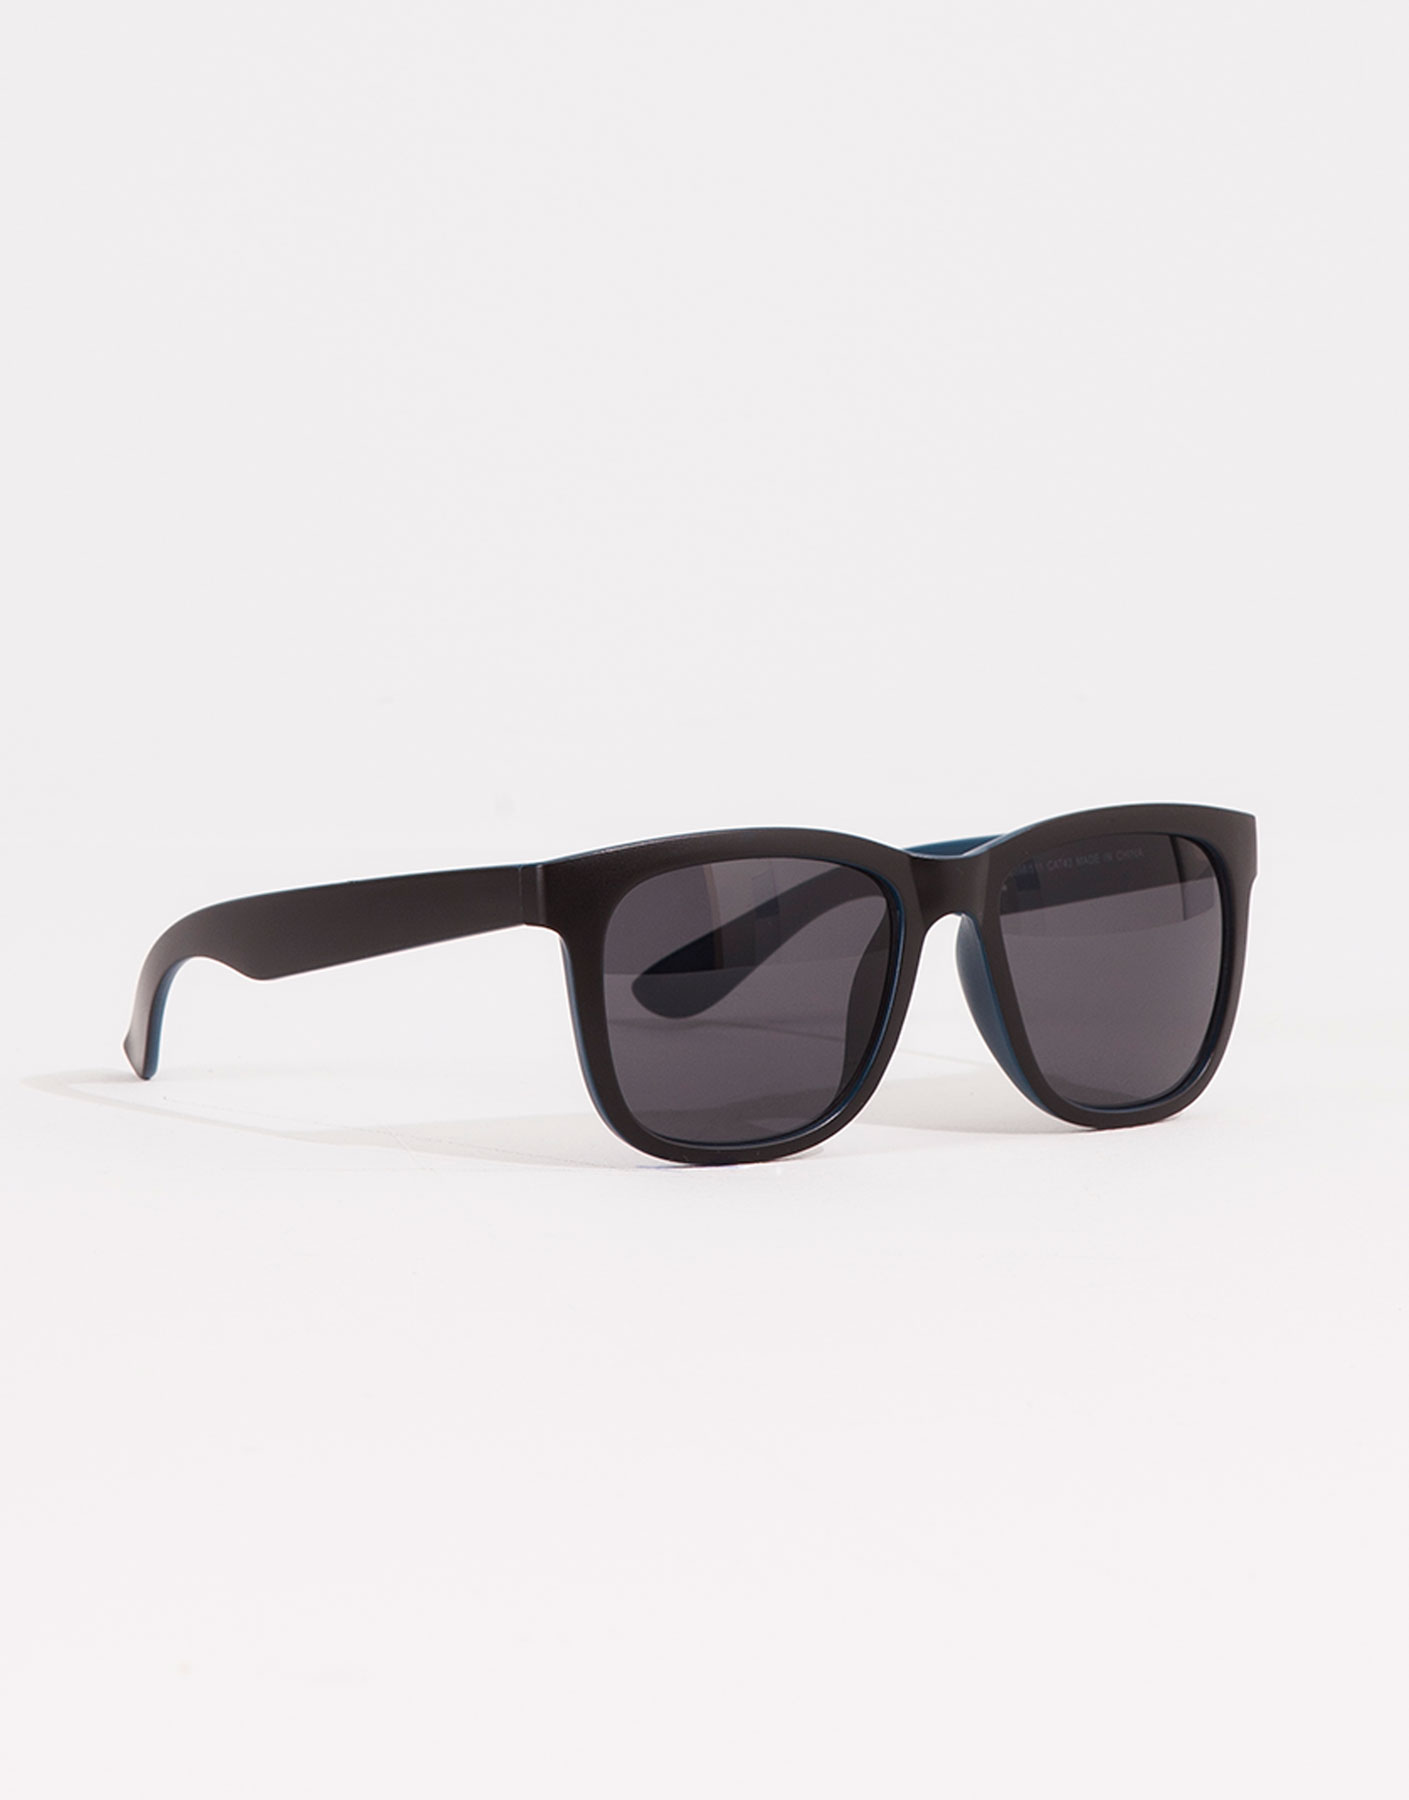 Mixed black & blue sunglasses